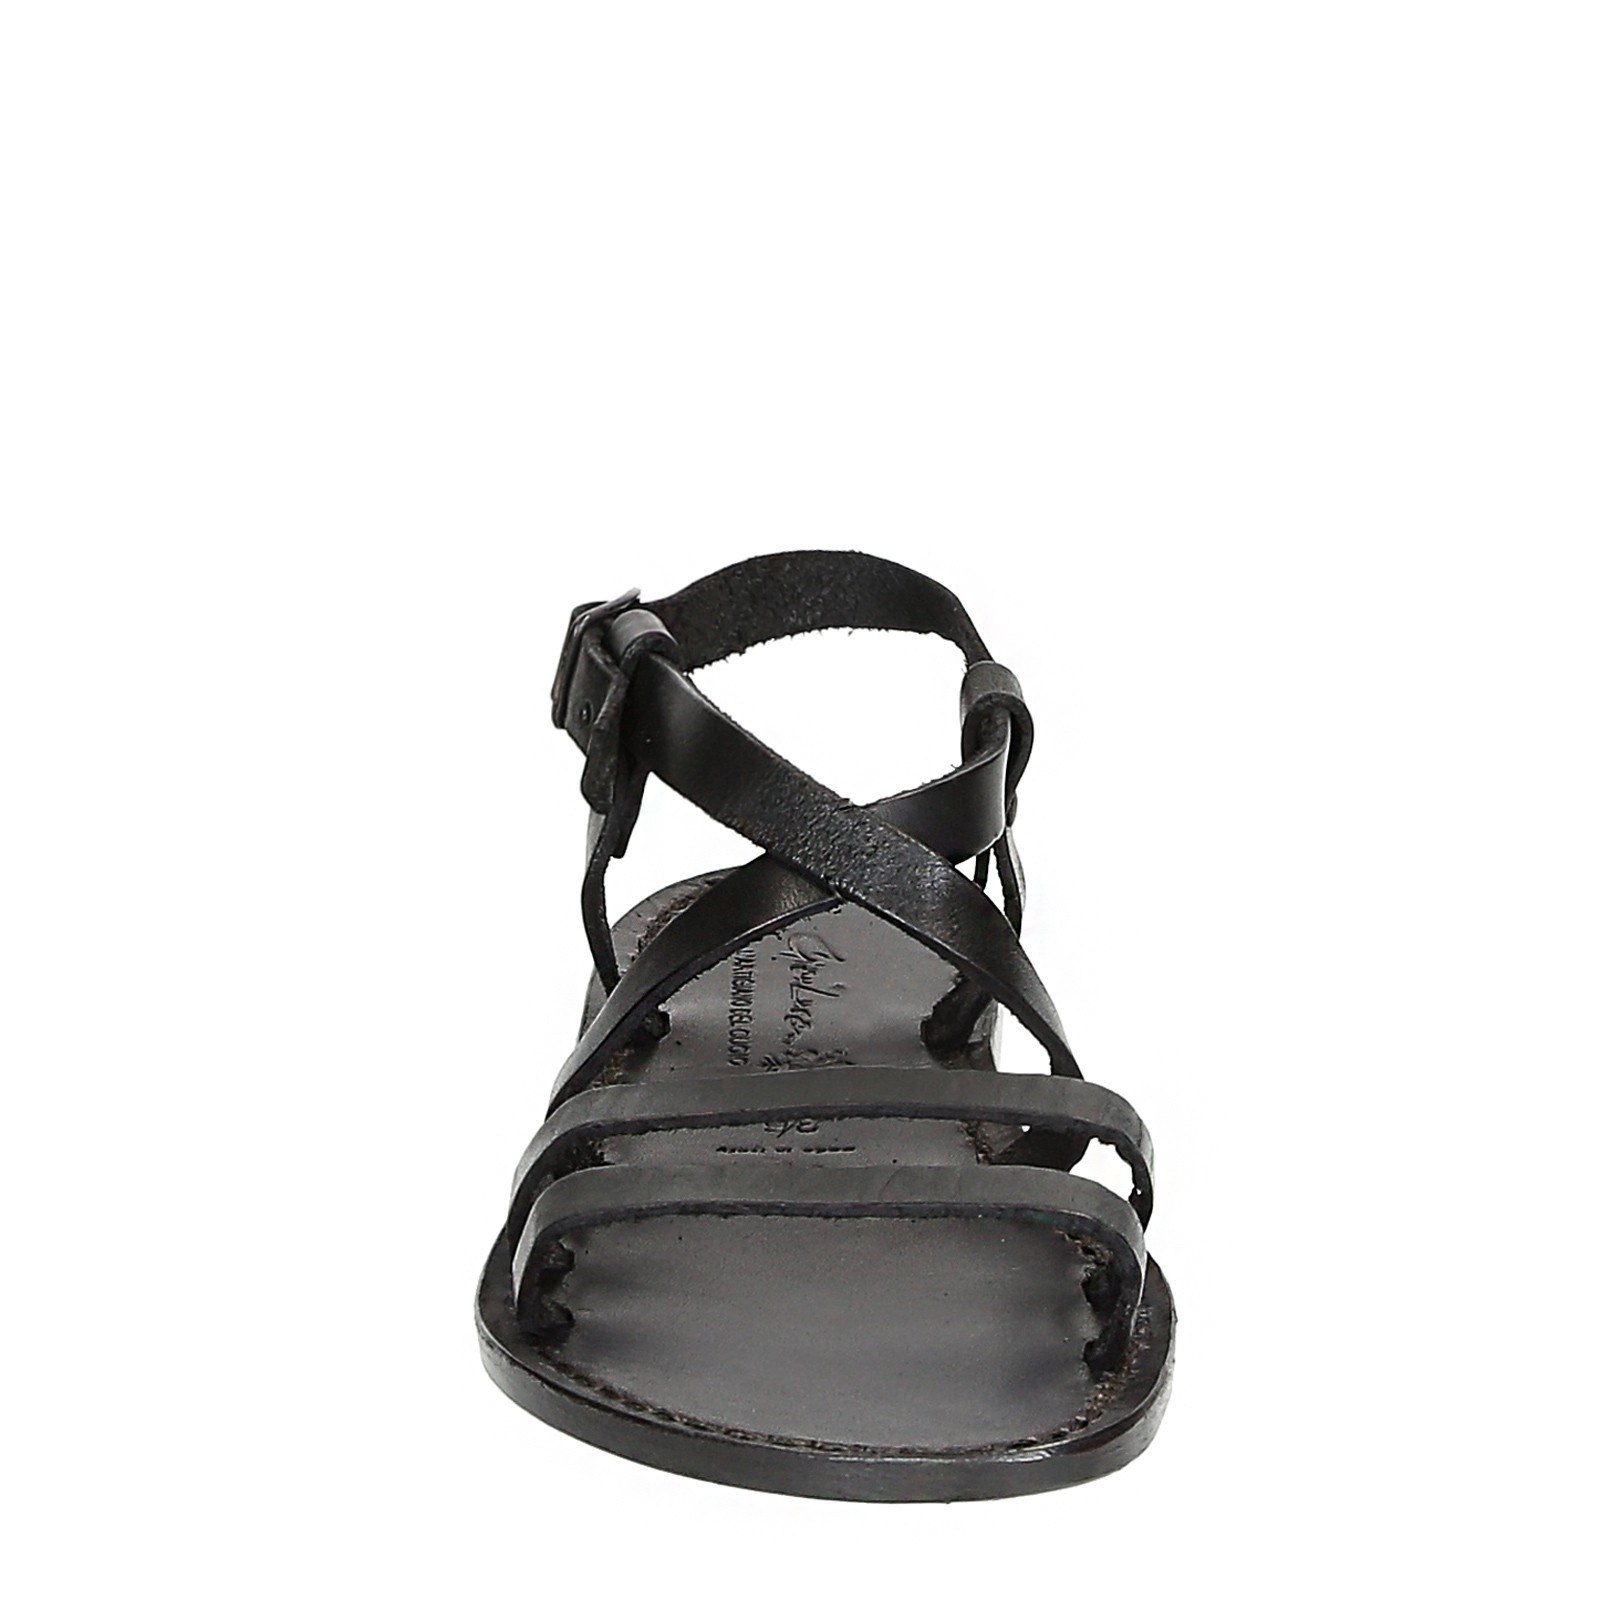 Details about  /Handmade women/'s franciscan sandals shoes in black real leather Made in Italy